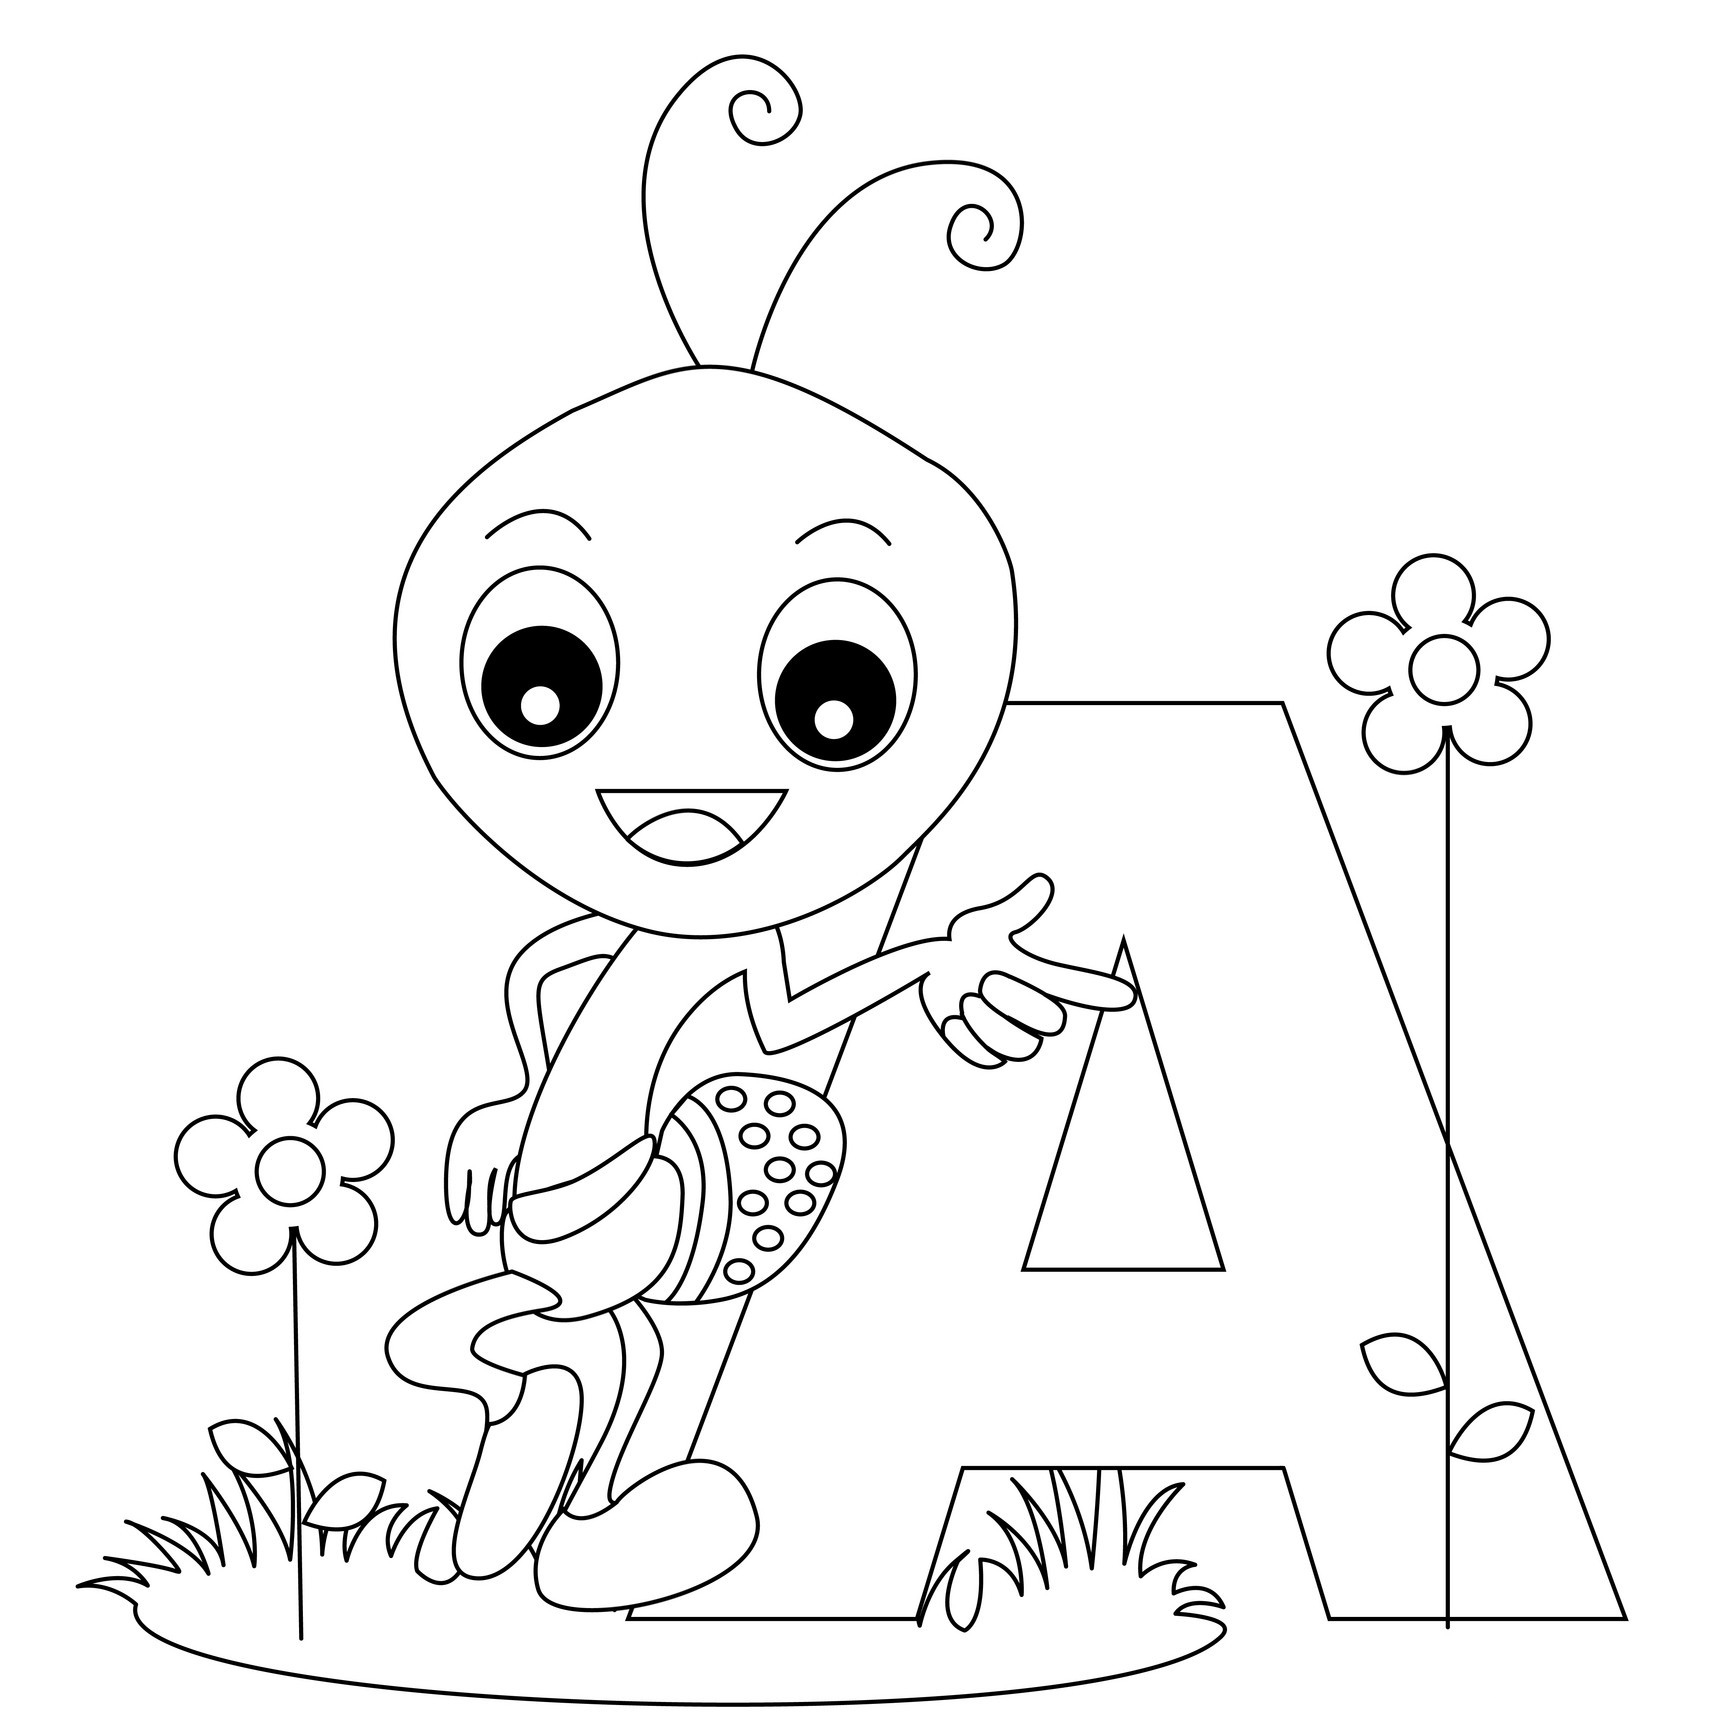 Free Alphabet Coloring Pages at GetDrawings.com | Free for personal ...